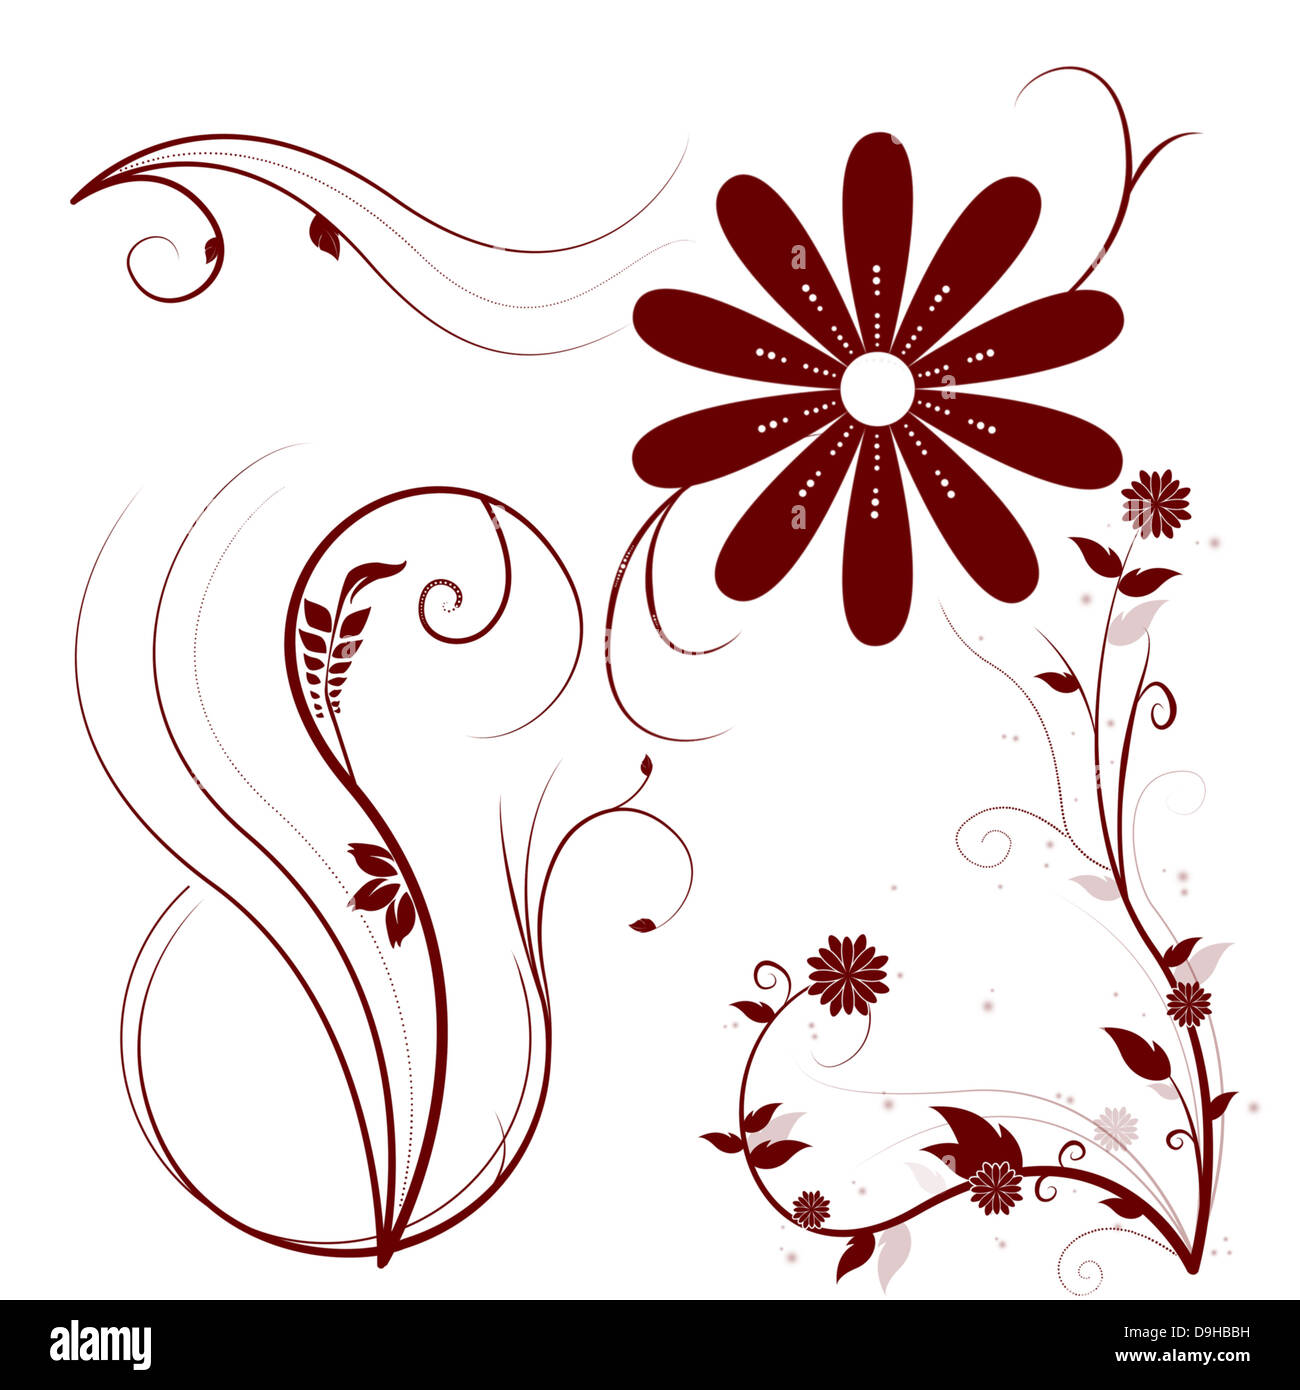 Beautiful illustrated flower background design Stock Photo